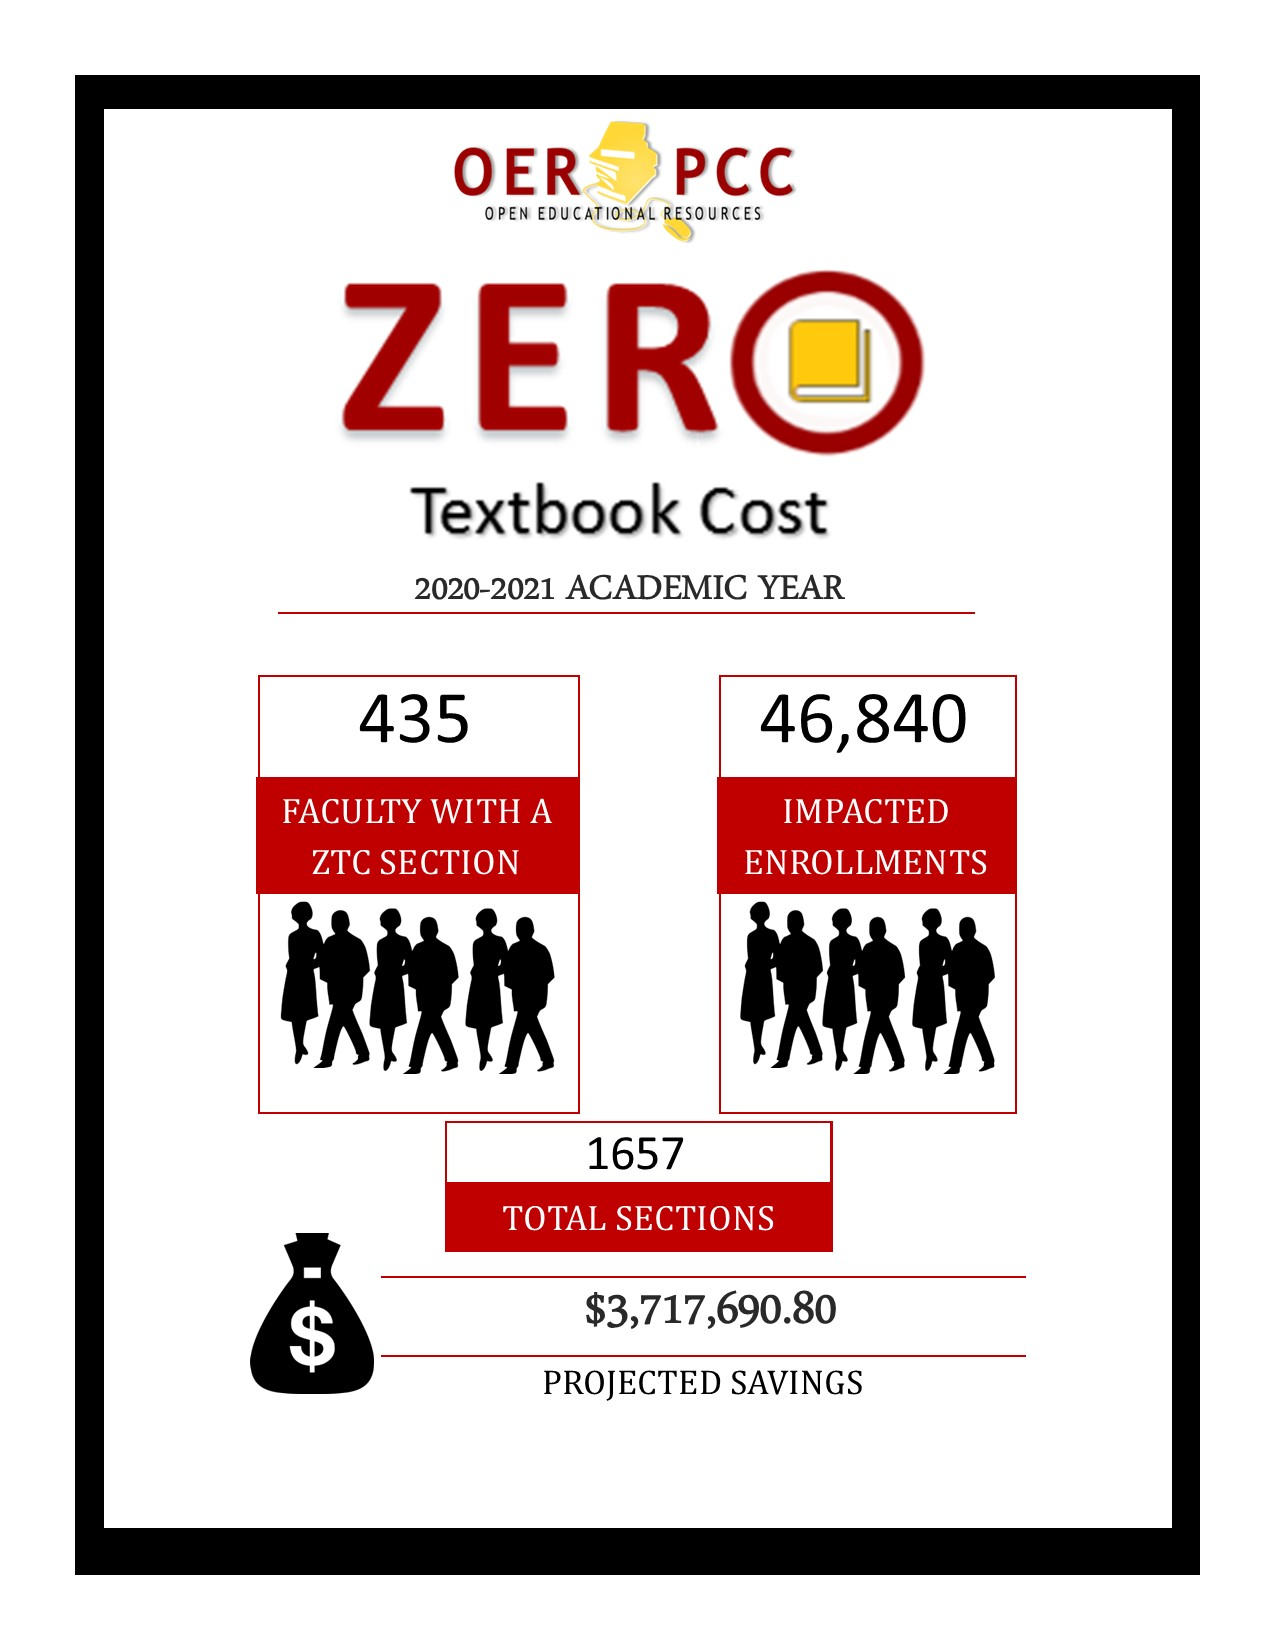 2020-2021 ZTC stats show 435 faculty, 46,840 enrollments, 1657 sections, and $3,717,690.80 savings